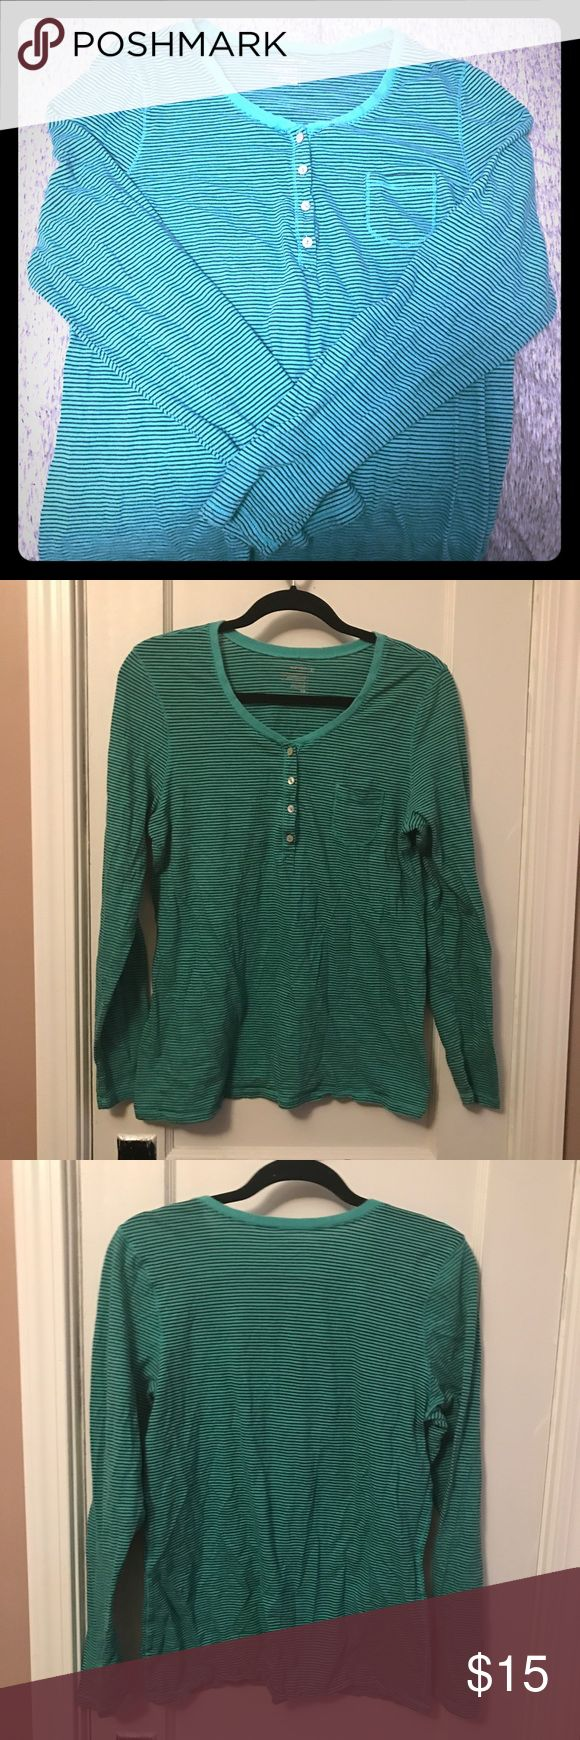 Old Navy Long Sleeved Top Green and black striped long sleeved top with buttoned scoop neck. Old Navy Tops Tees - Long Sleeve